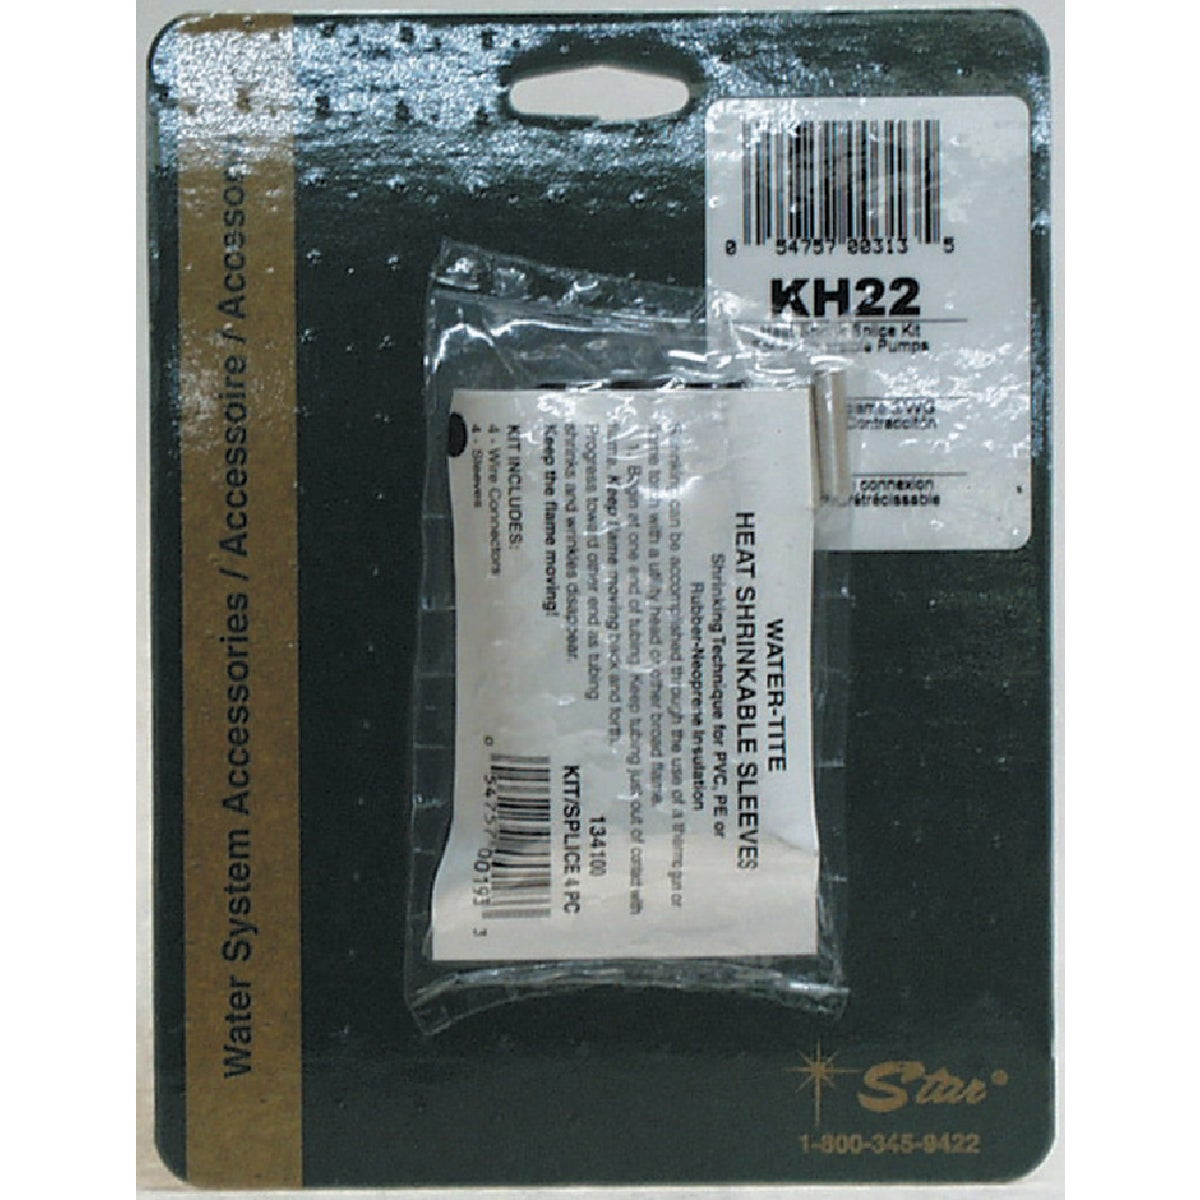 SPLICE KIT - KH22 by Star Water Systems